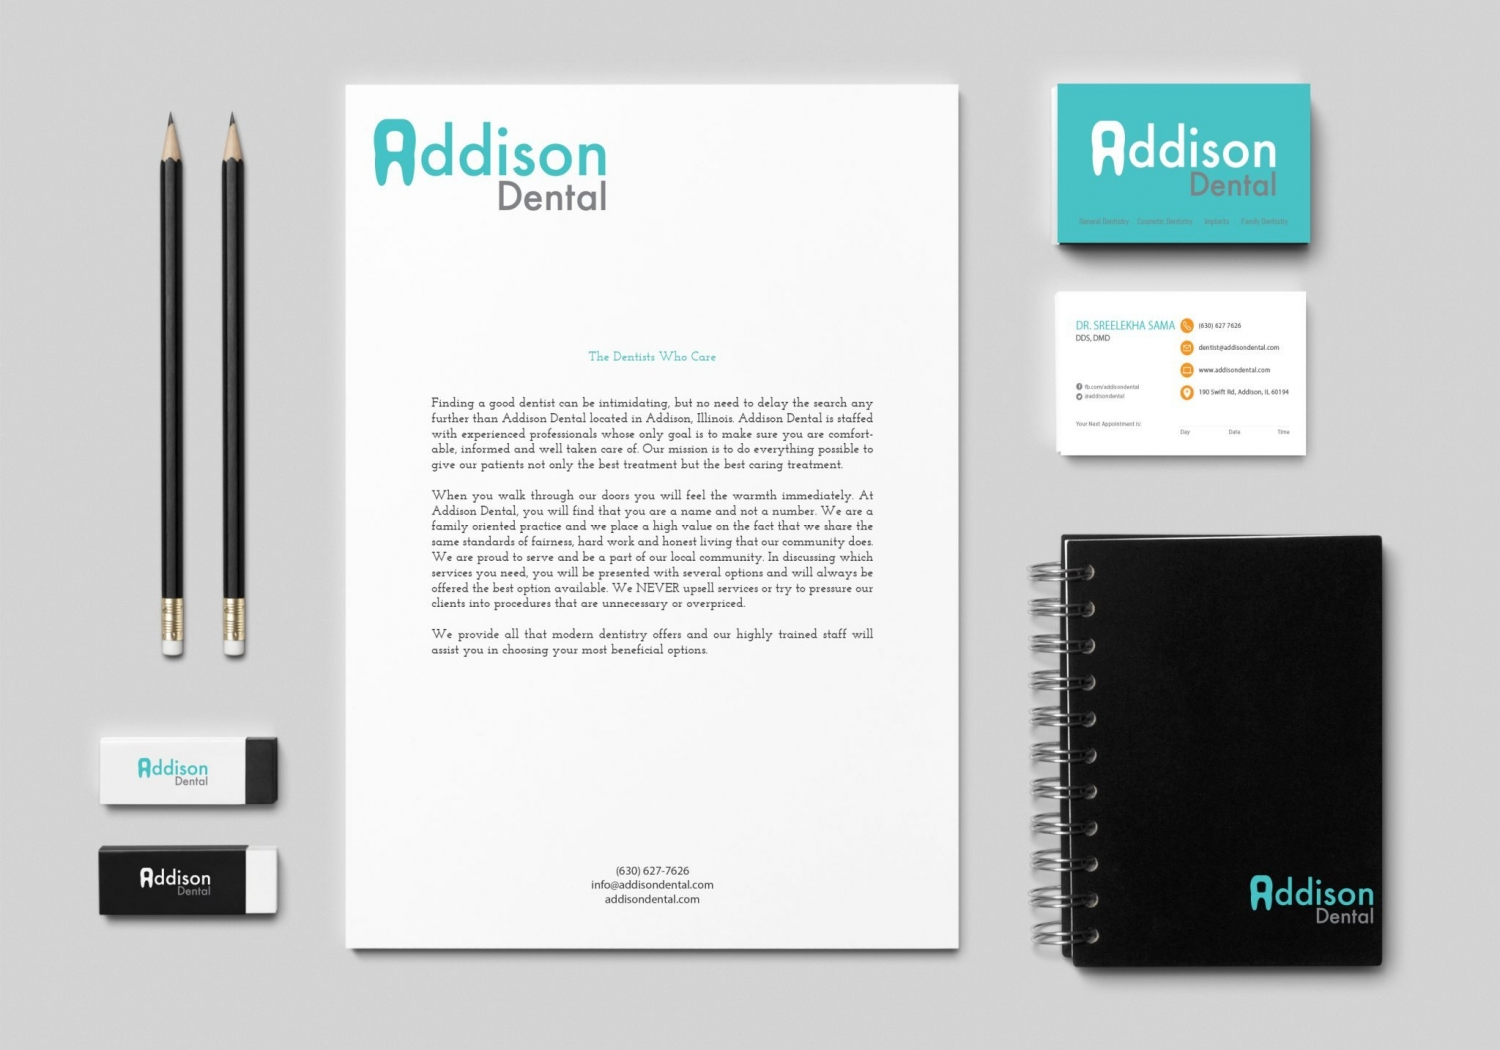 Branding Identity for Addison Dental